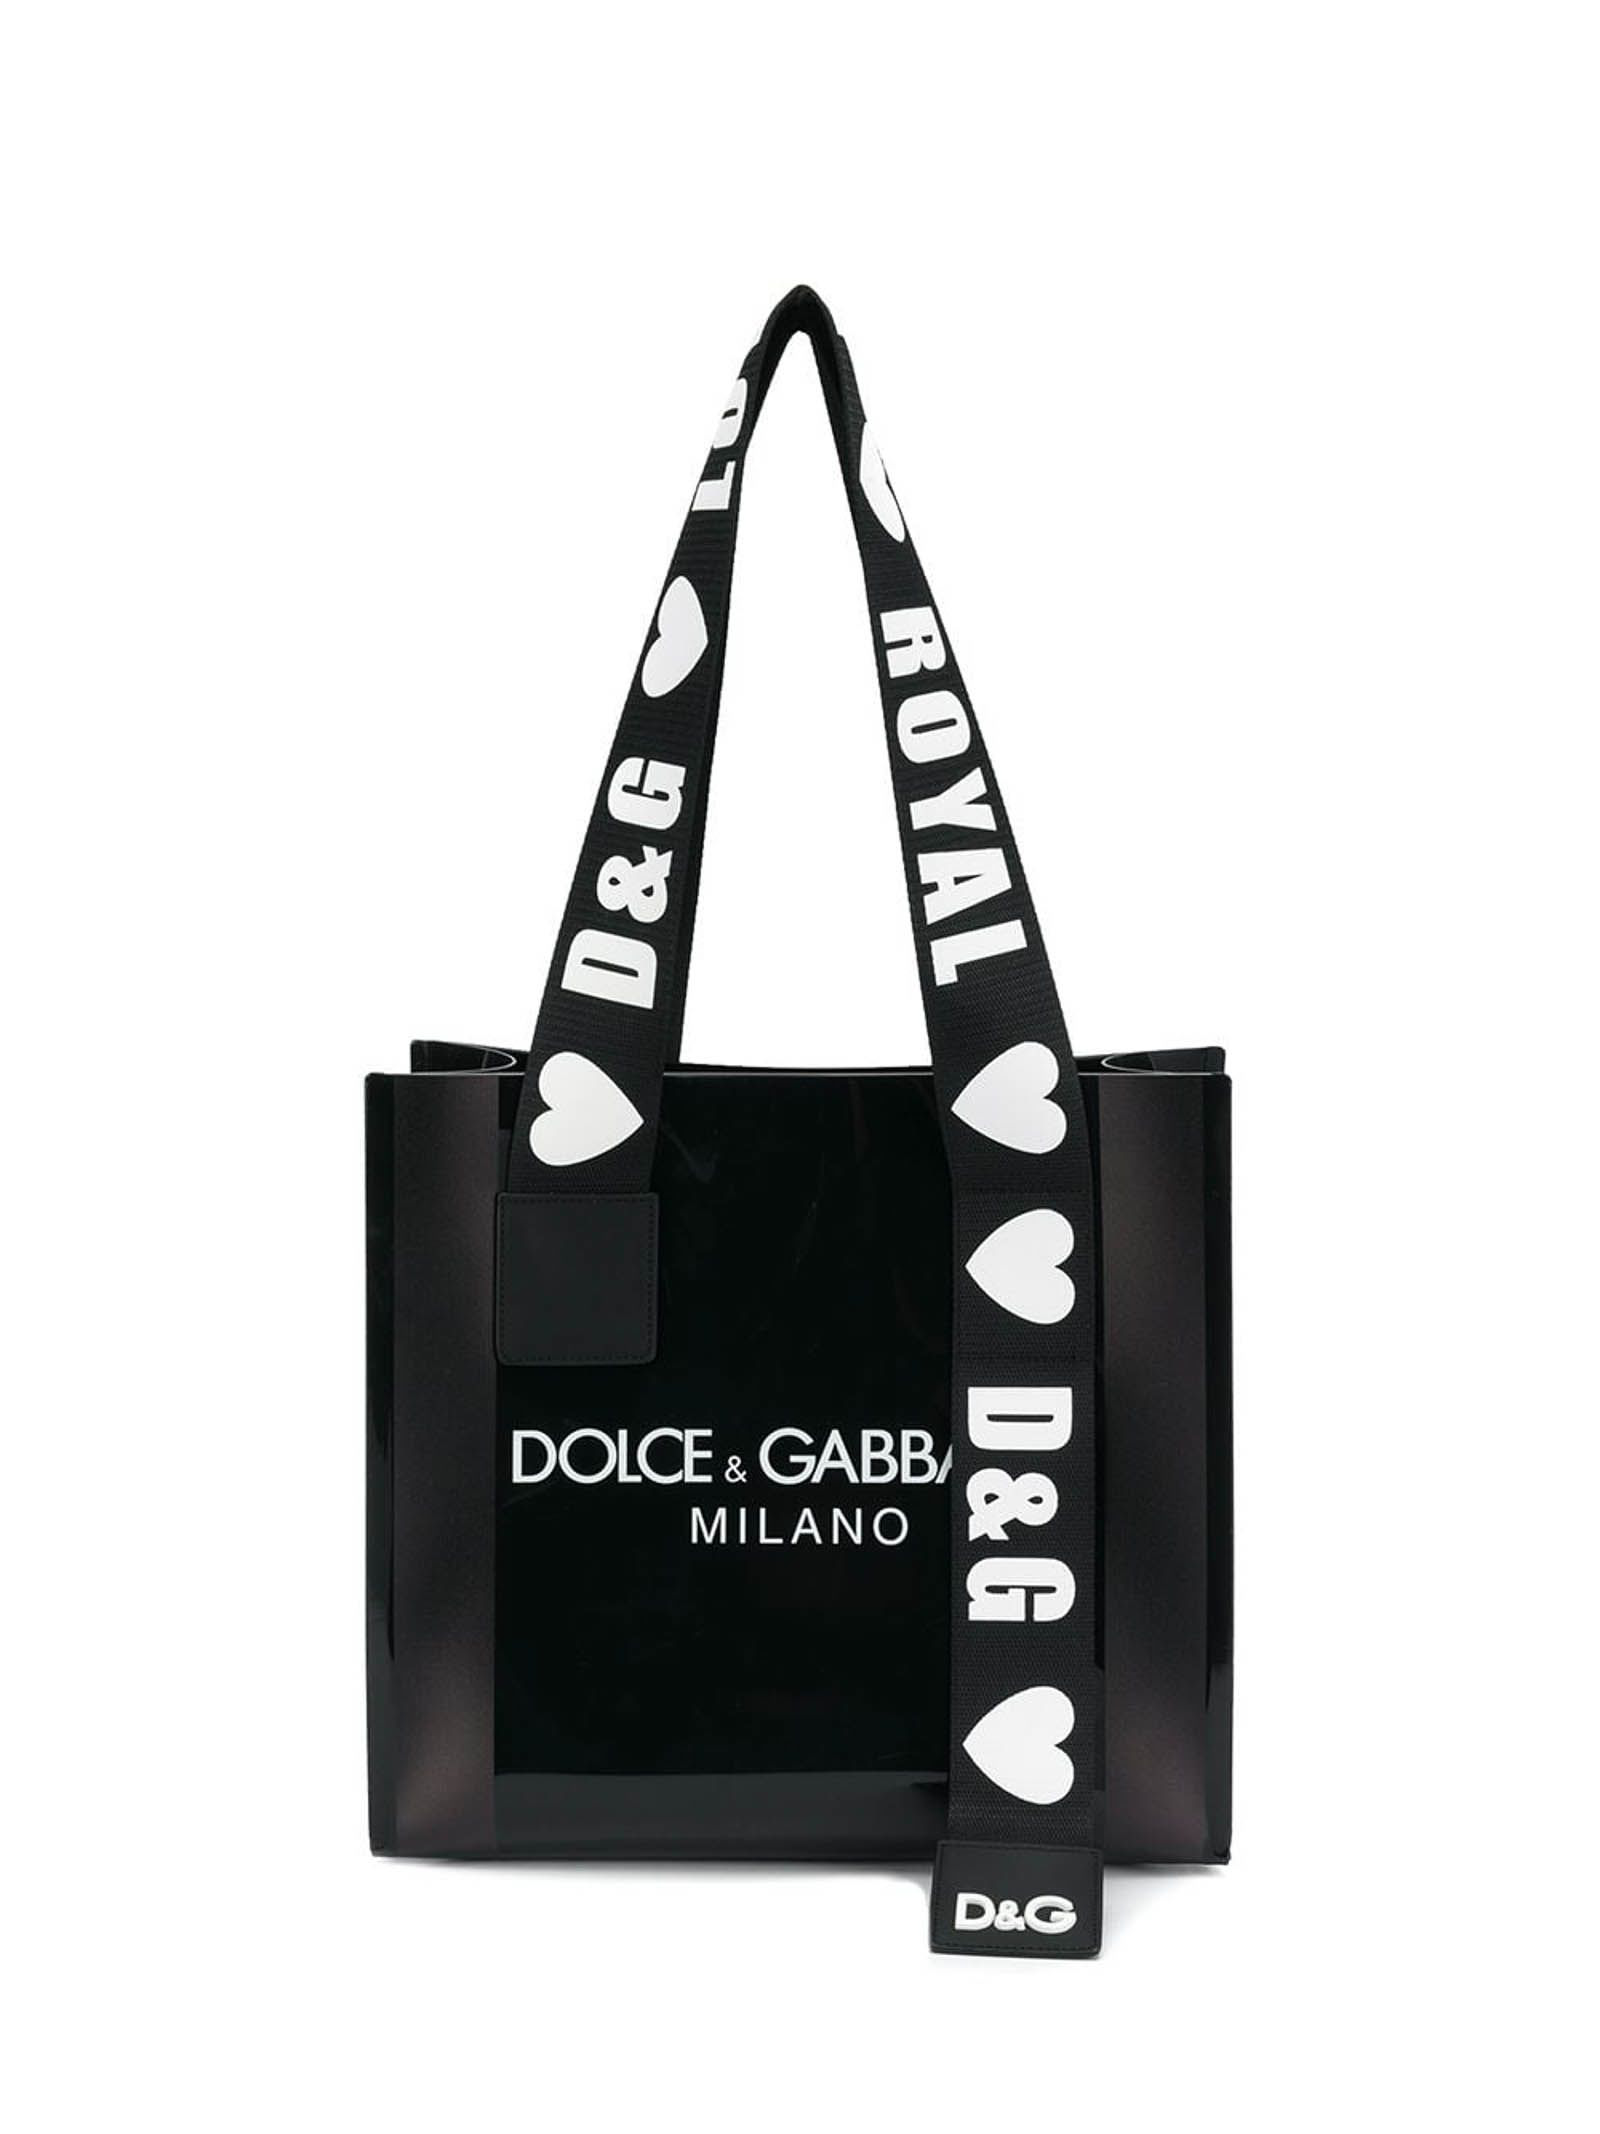 dolce gabbana logo strap shopper bag in d g milano f rosso modesens logo strap shopper bag